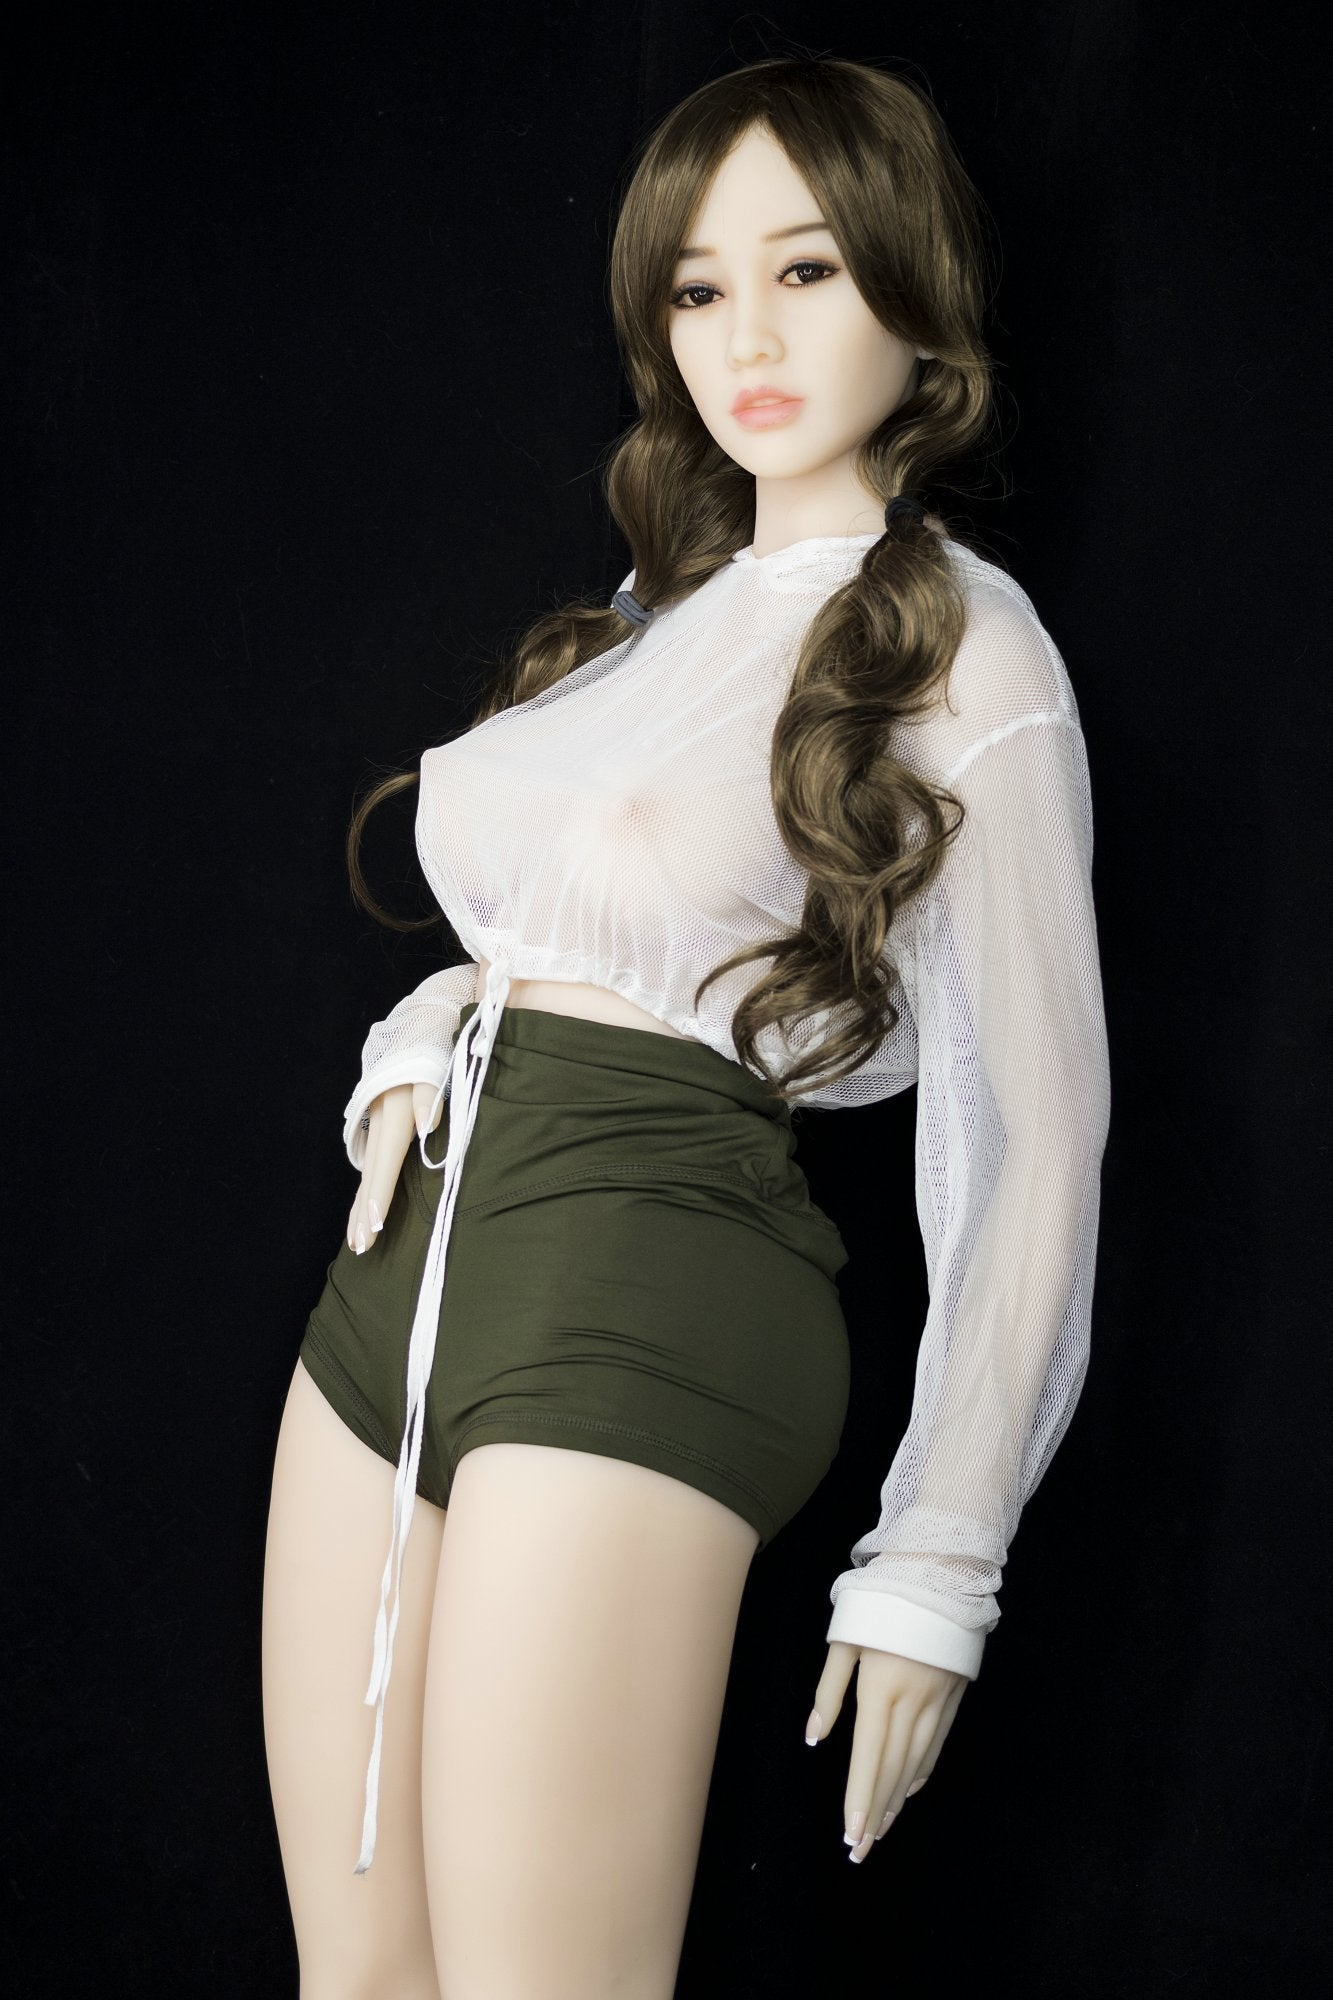 lela 155cm brown hair japanese medium tits athletic tpe yl sex doll(2)